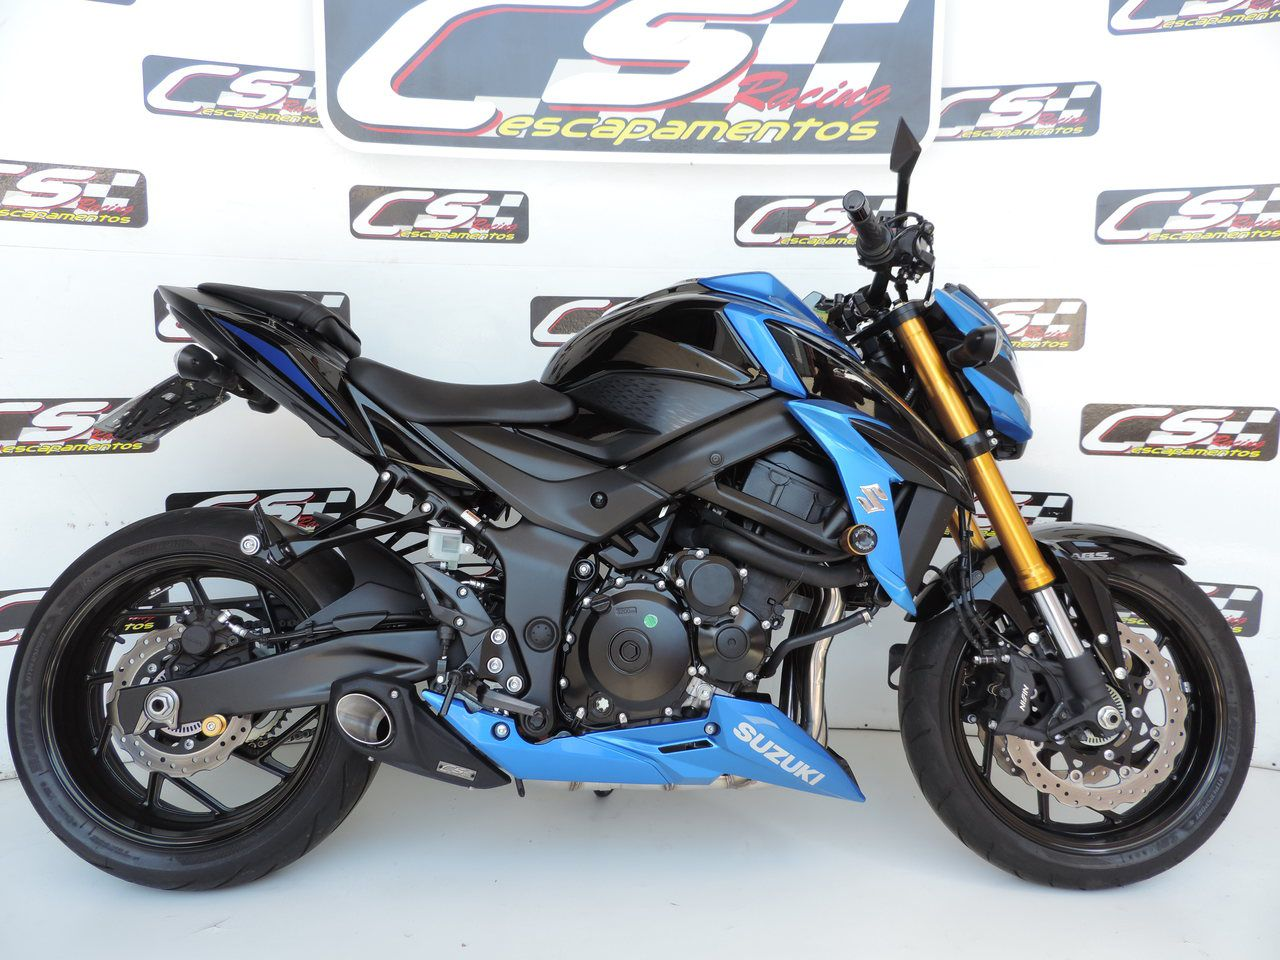 Escapamento Esportivo Full | CS Racing | GSX-S750